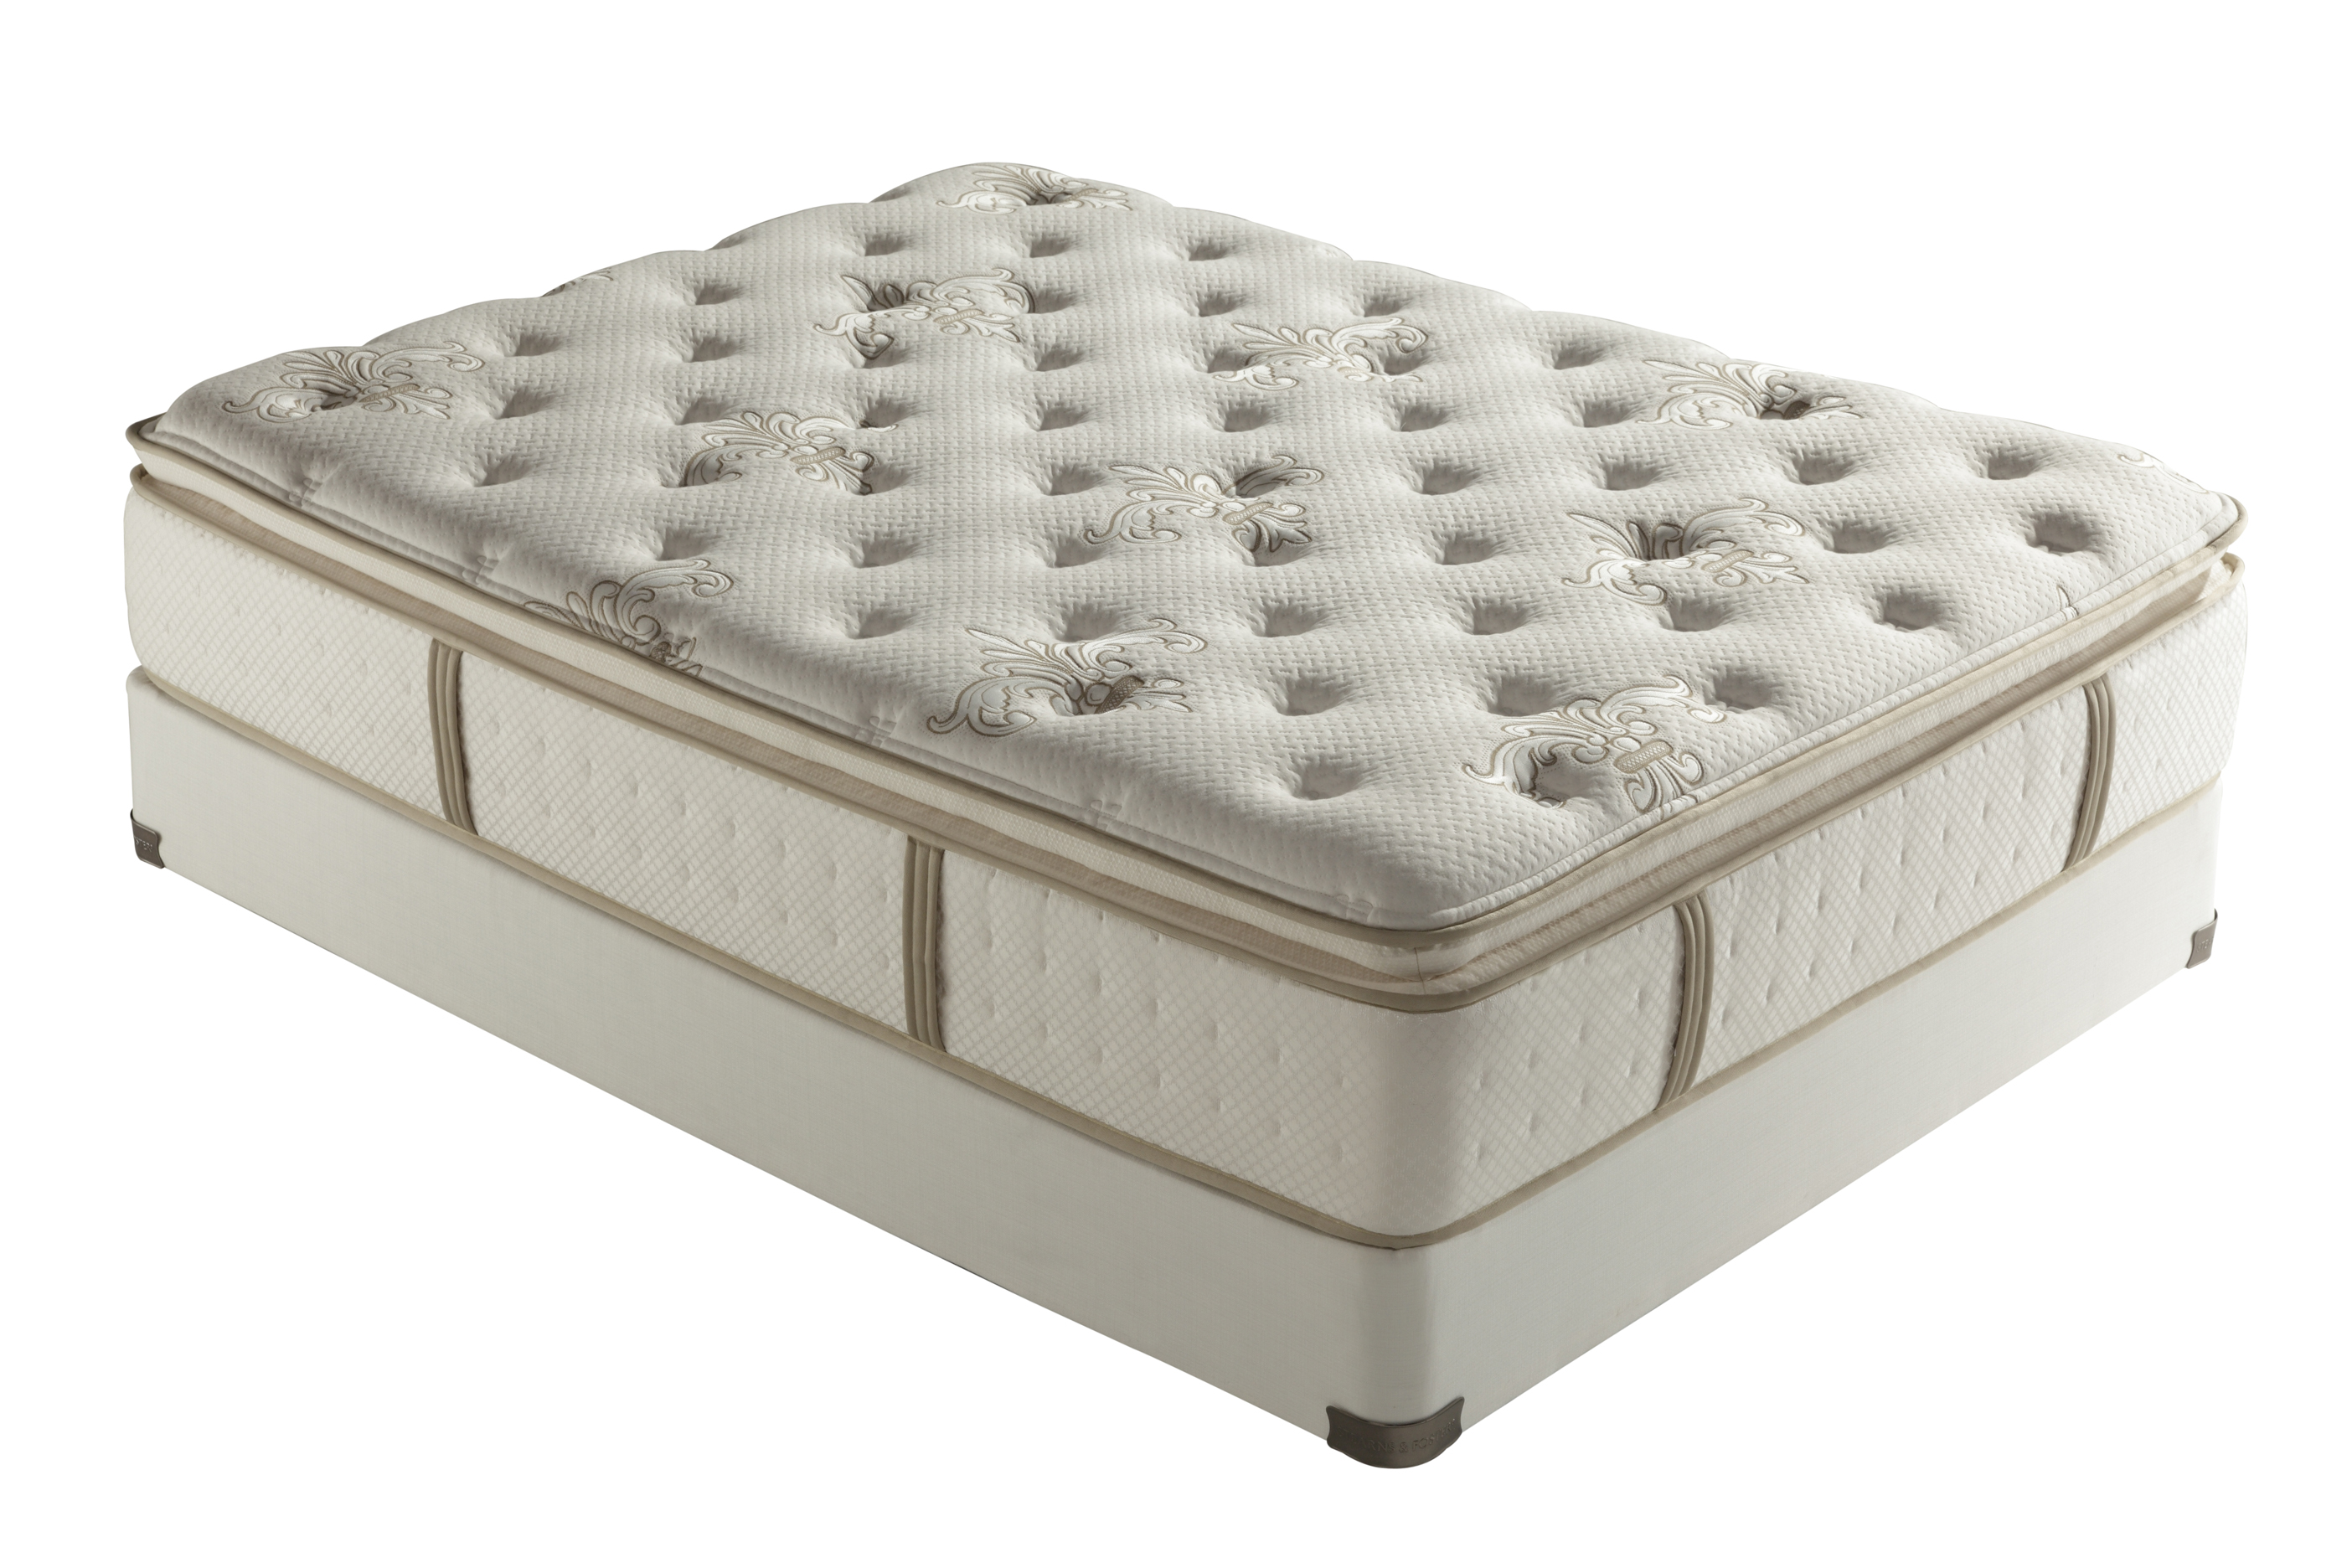 Stearns & Foster Susie Luxury Firm Euro Pillow Top Mattress